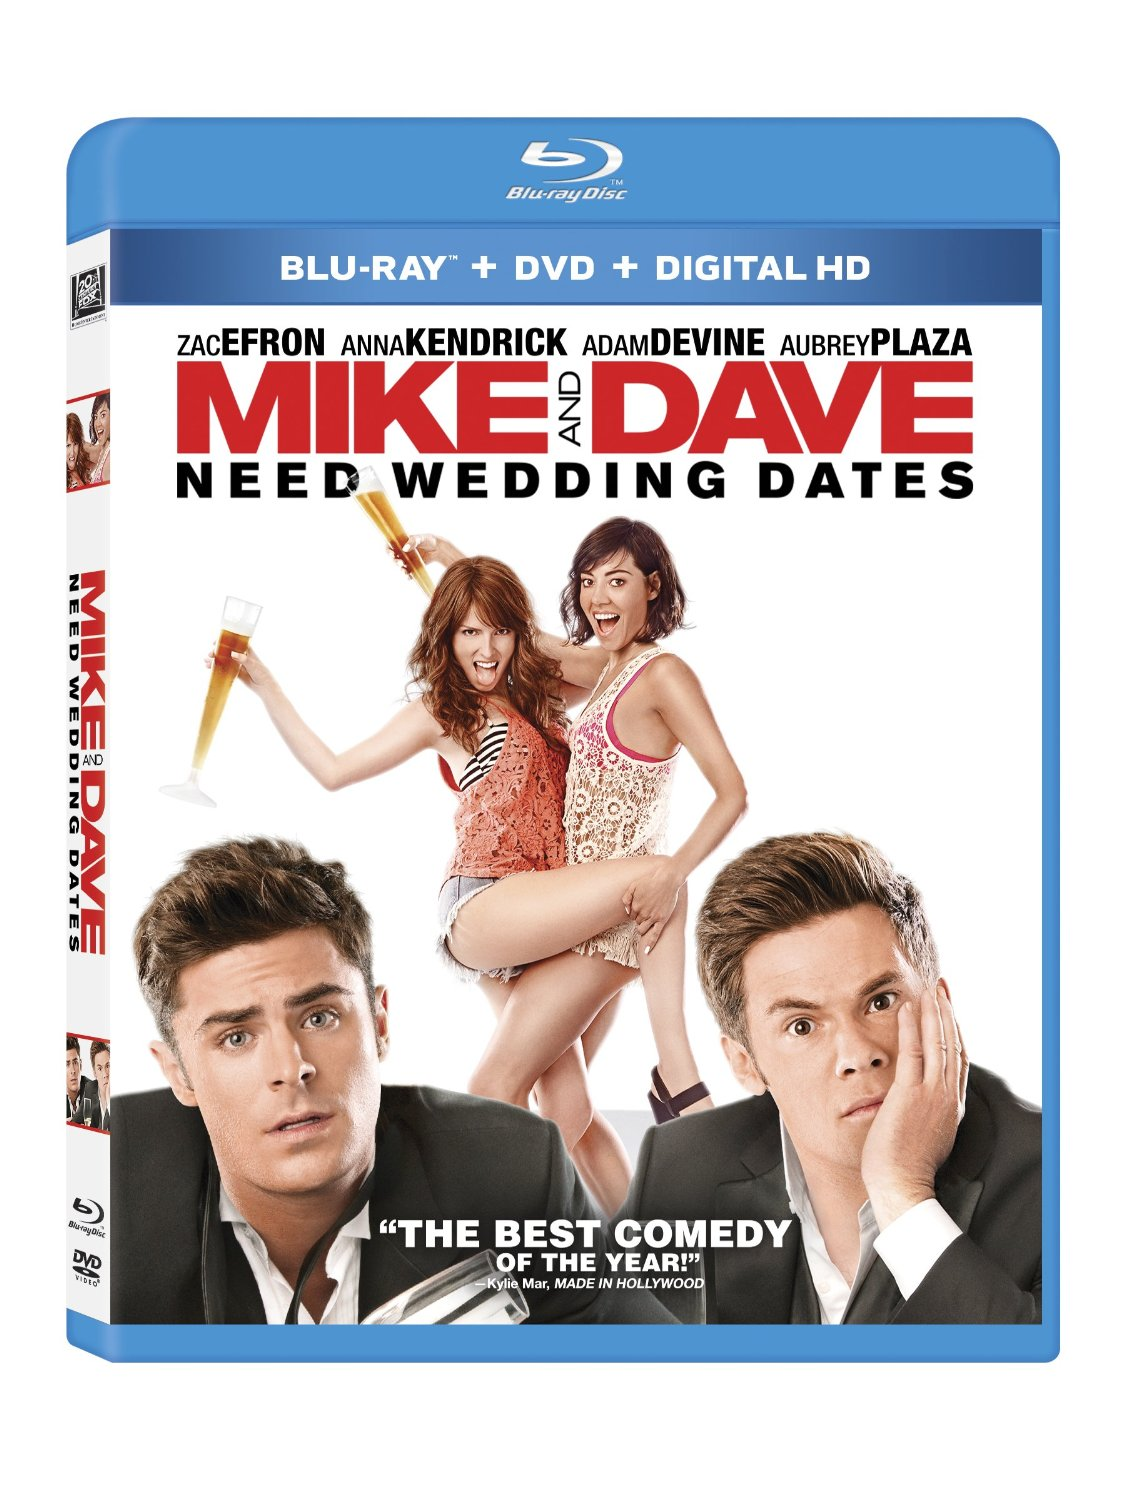 Mike & Dave Need Wedding Dates [Movie] - Mike & Dave Need Wedding Dates